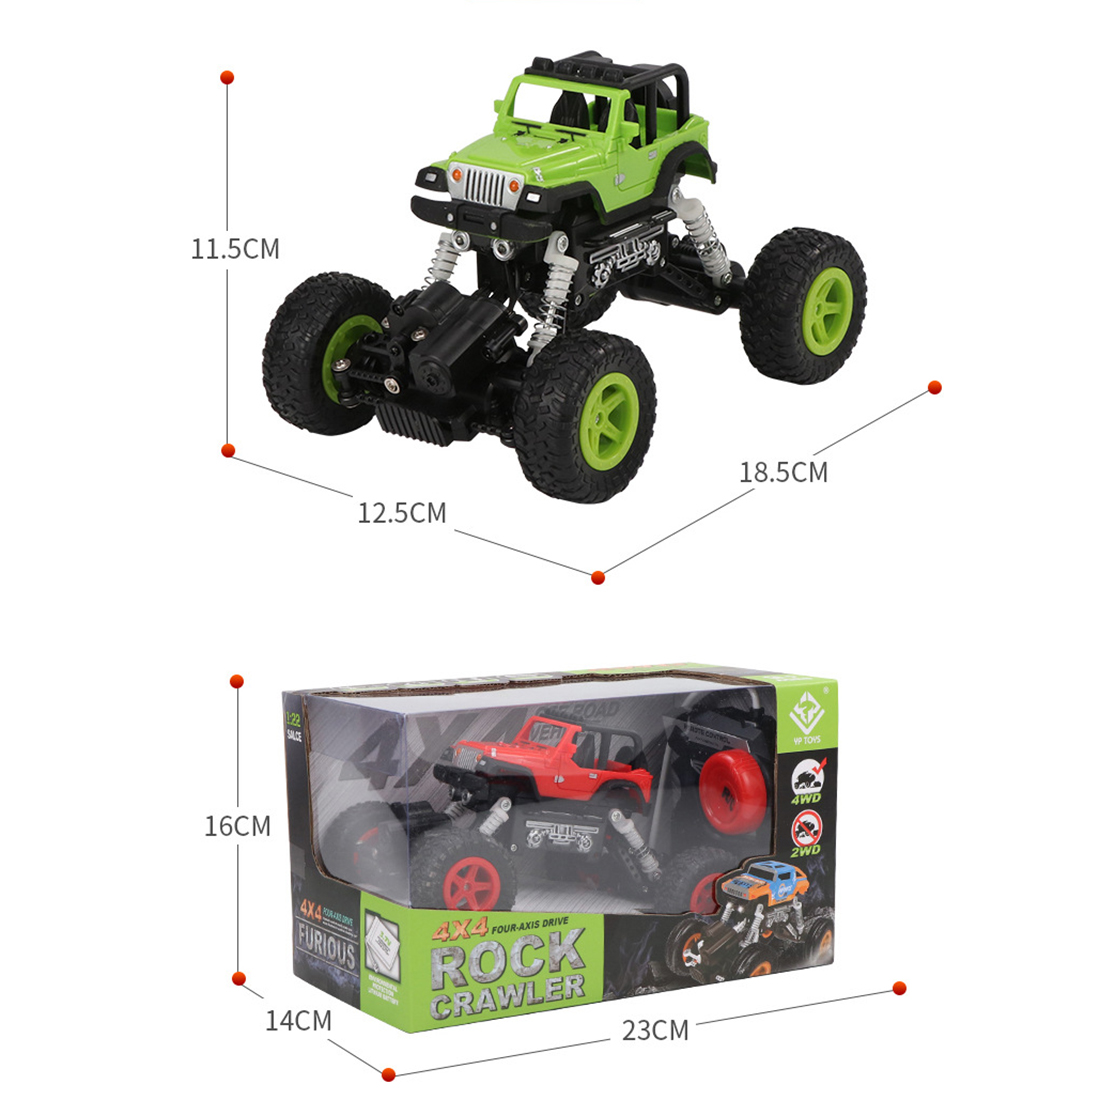 RC 4-Wheel Drive Off-Road Vehicle RC Climbing Car Shock Absorber Rubber Tire Remote Control Toy for Children - Green/Red